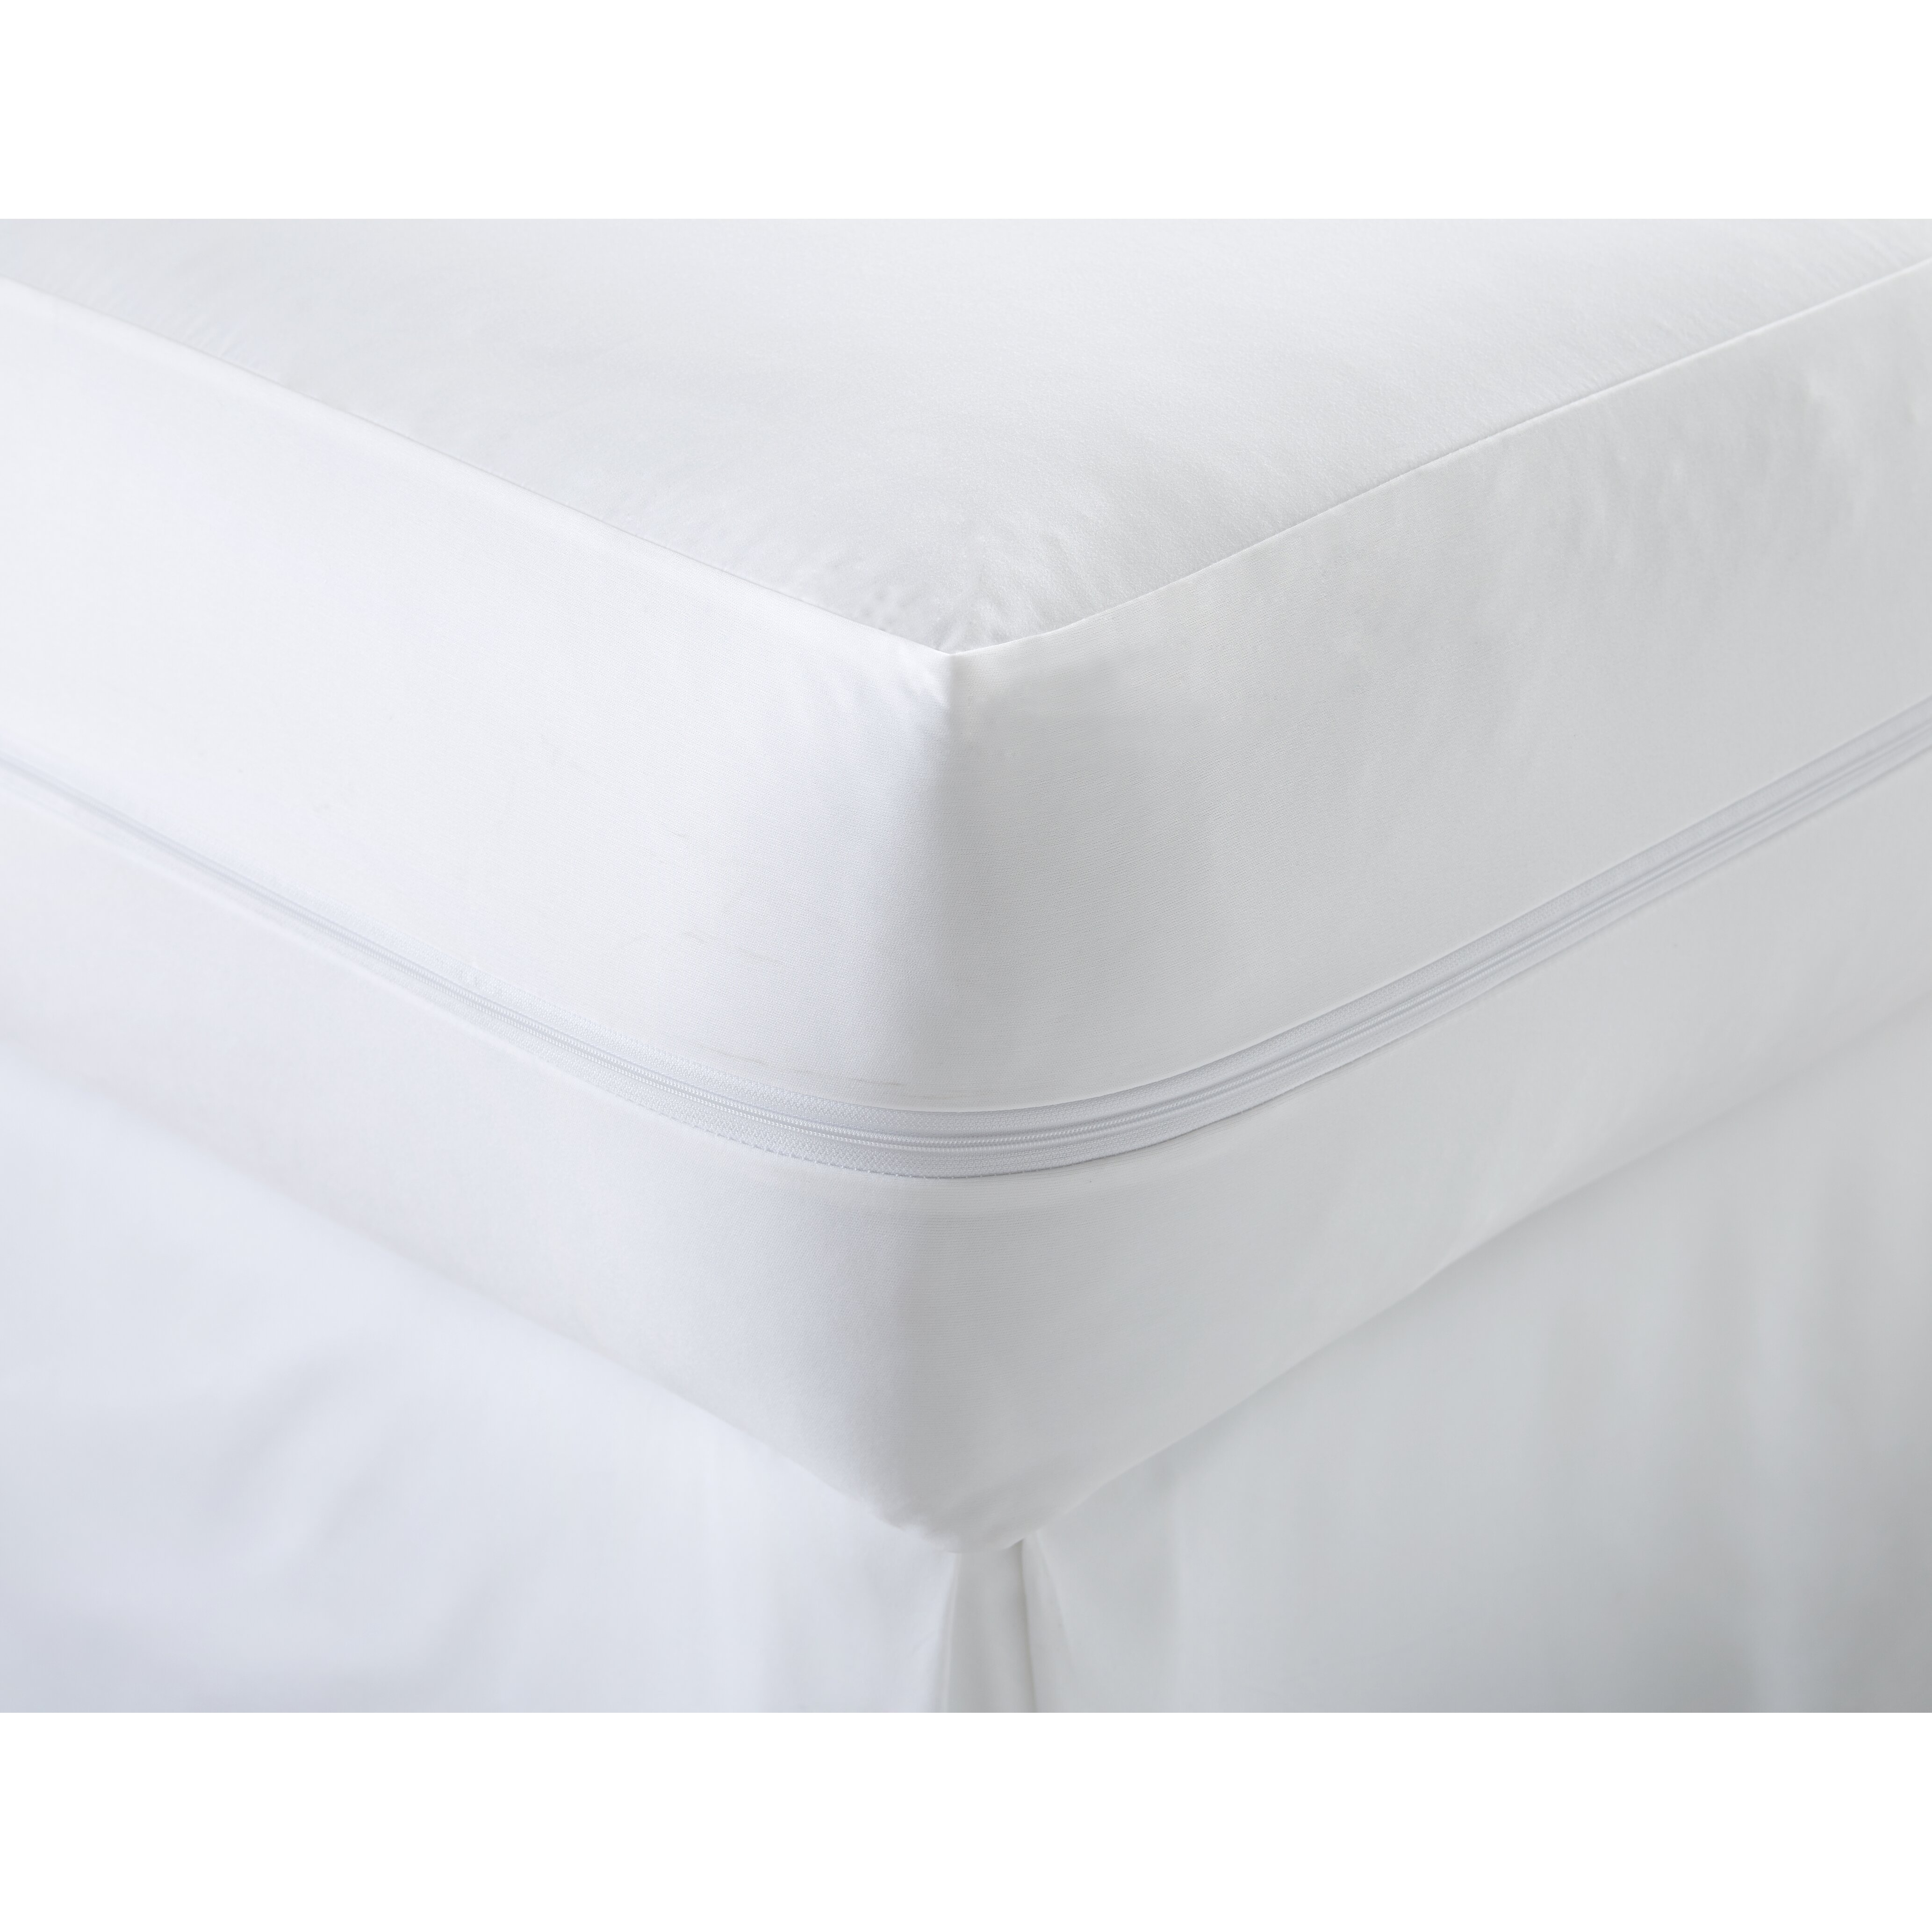 IEnjoy Home Becky Cameron™ Premium Bed Bug and Water Proof